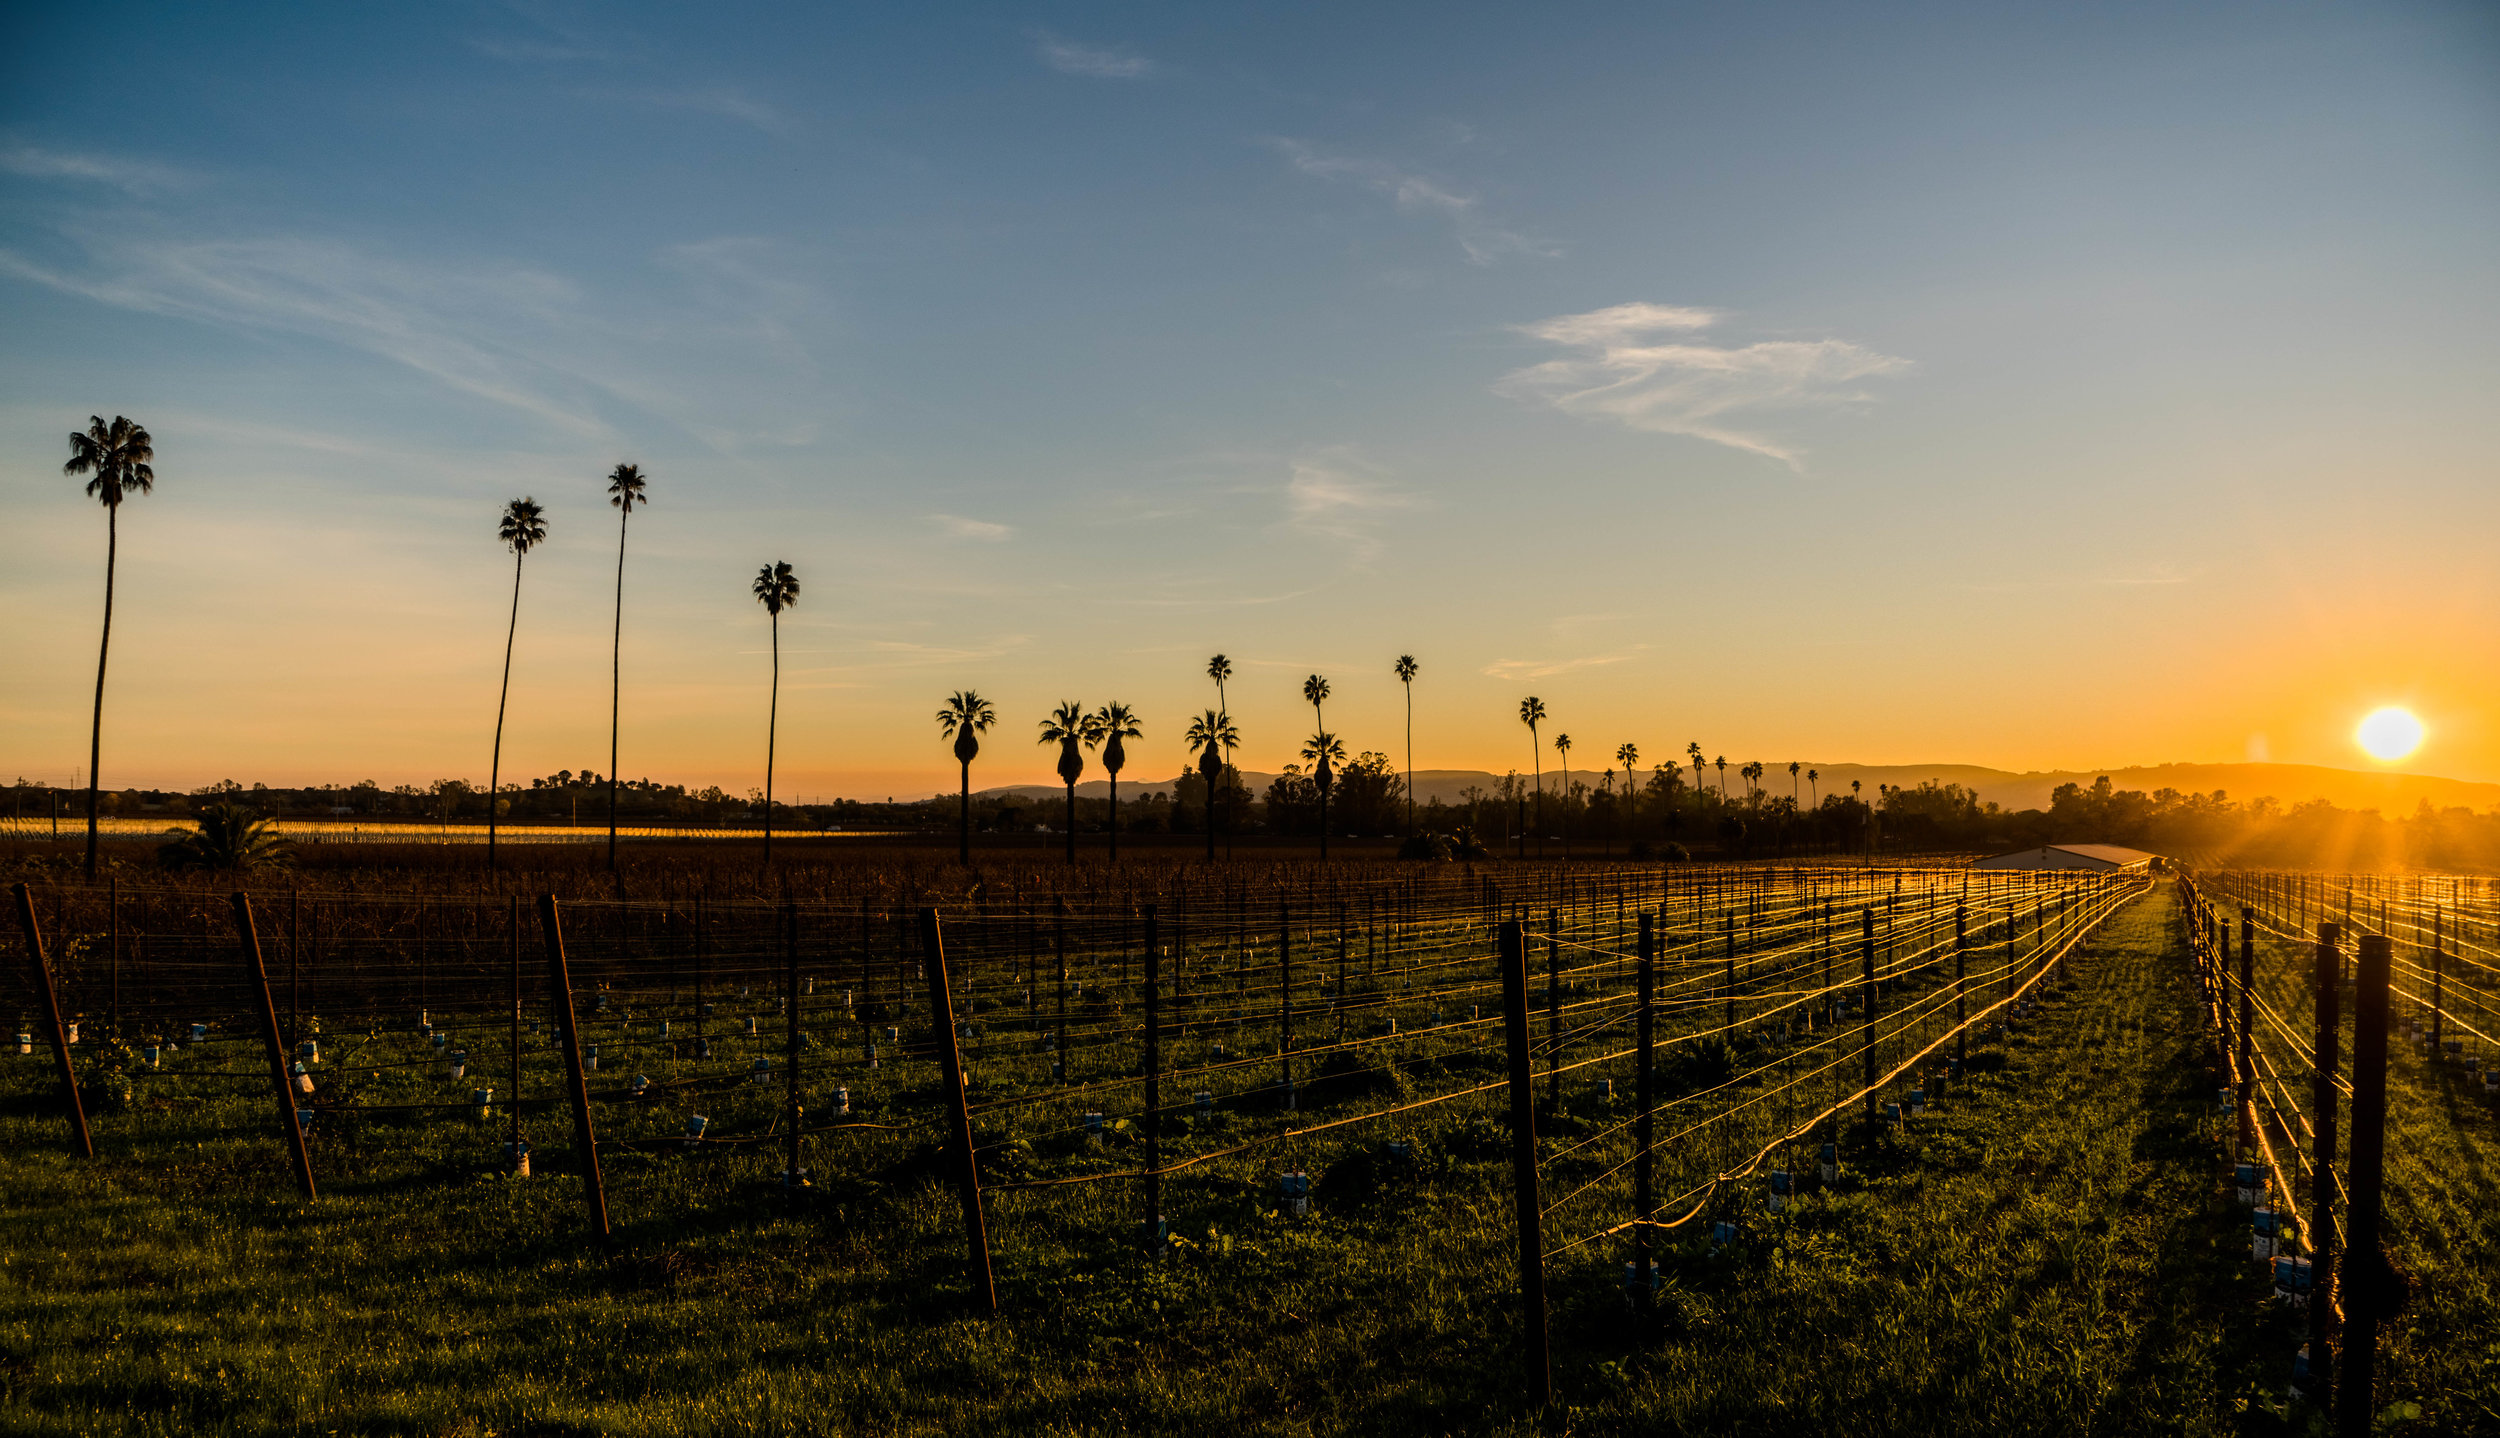 Napa Valley Wineries - Where to go, what to taste, we have a full itinerary for you!